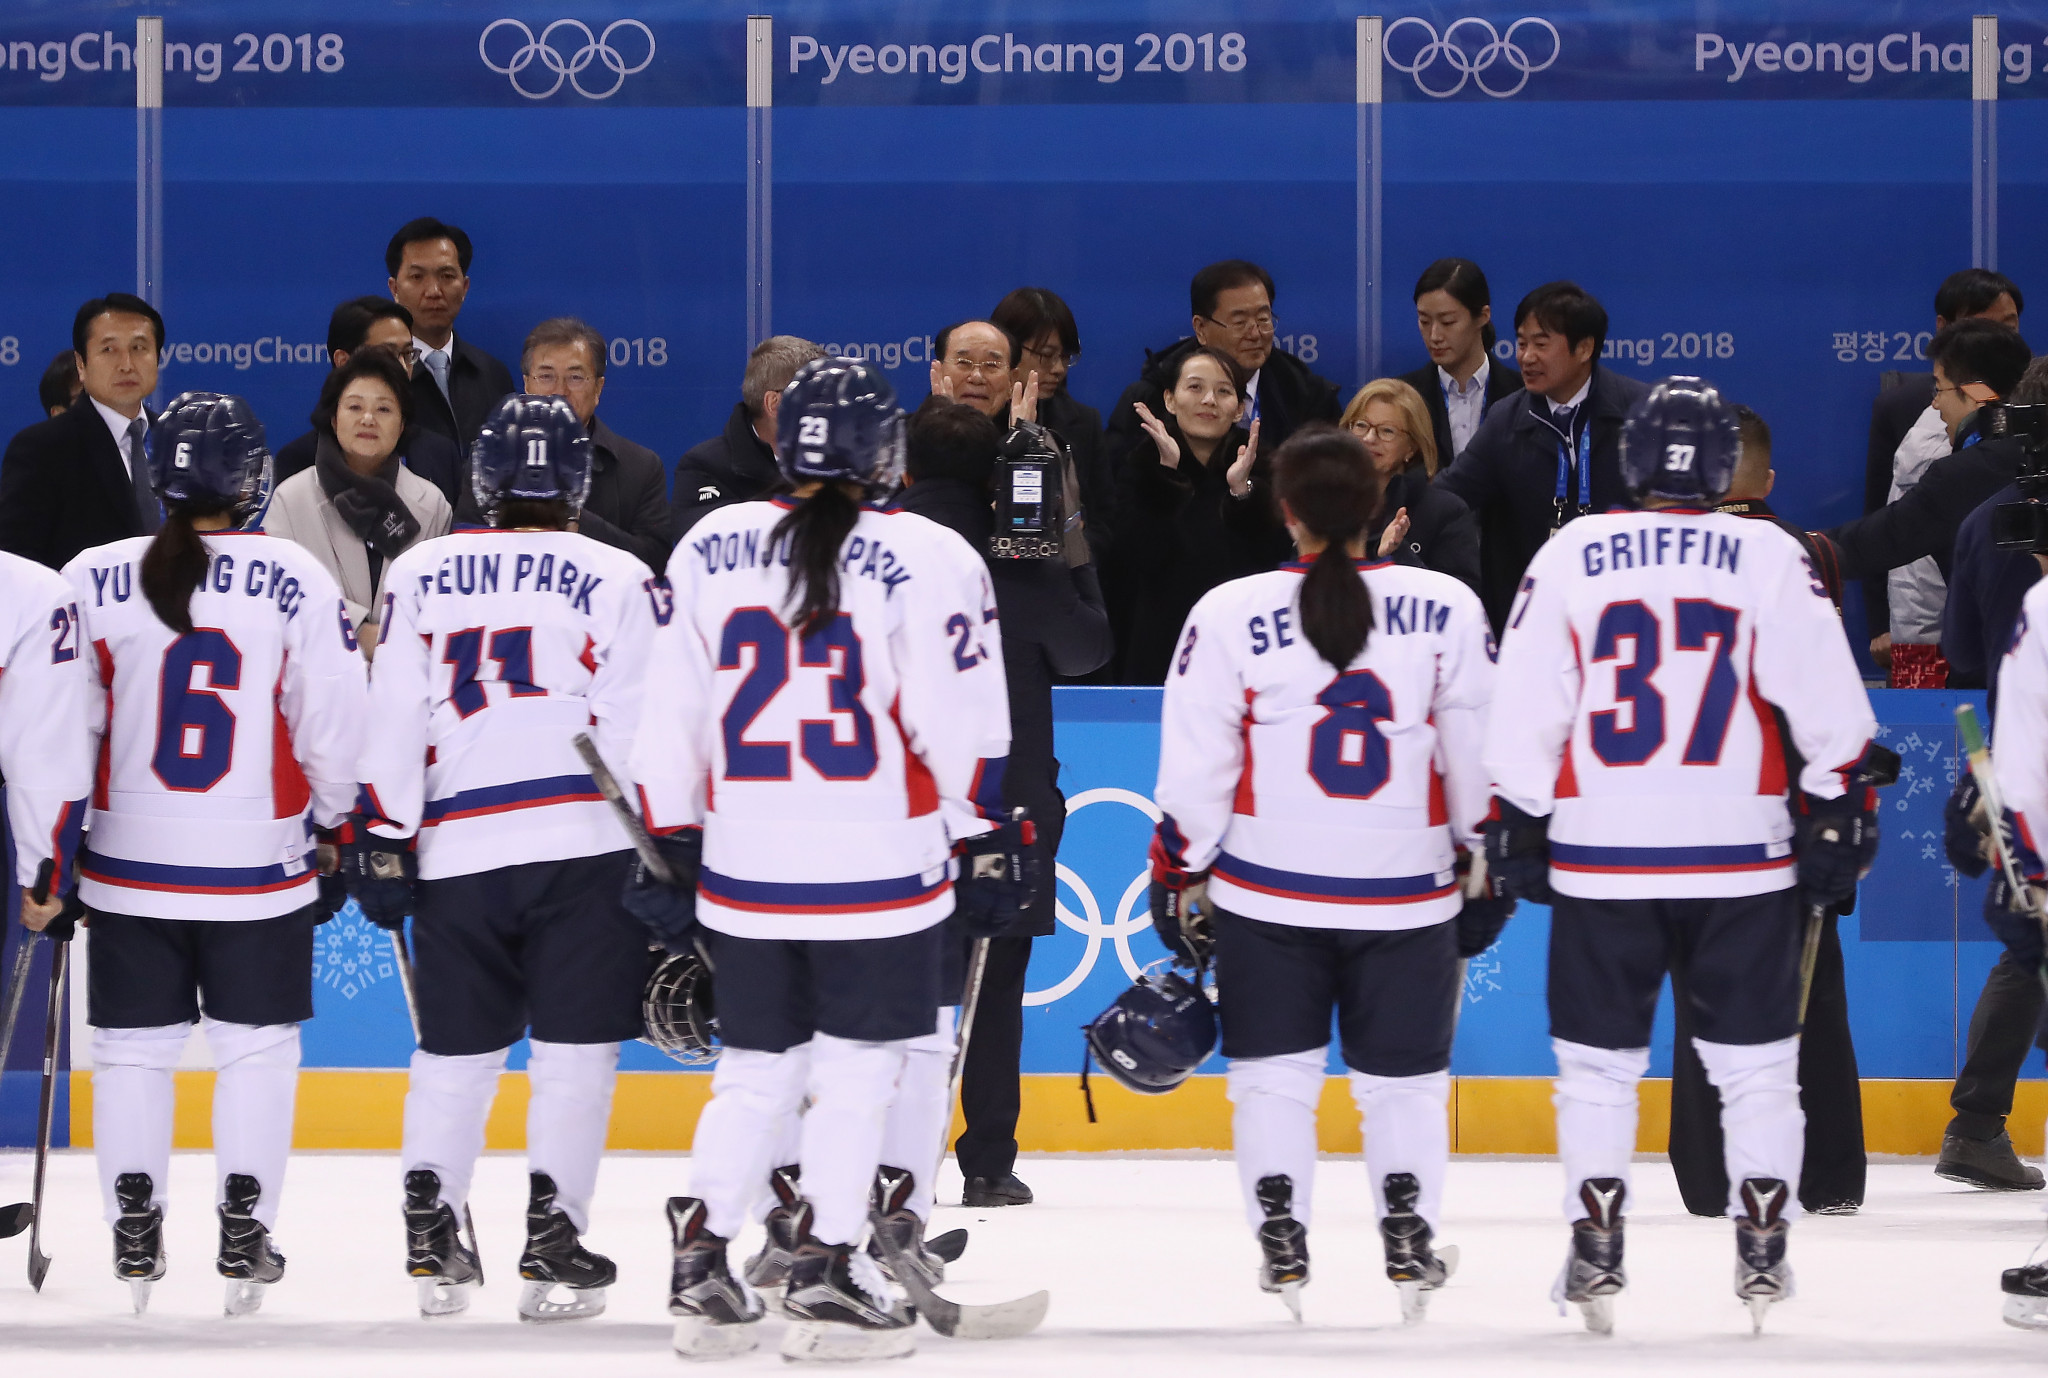 A film depicting the unified Korean women's ice hockey team which competed here at Pyeongchang 2018 will be produced by the Olympic Channel ©Getty Images